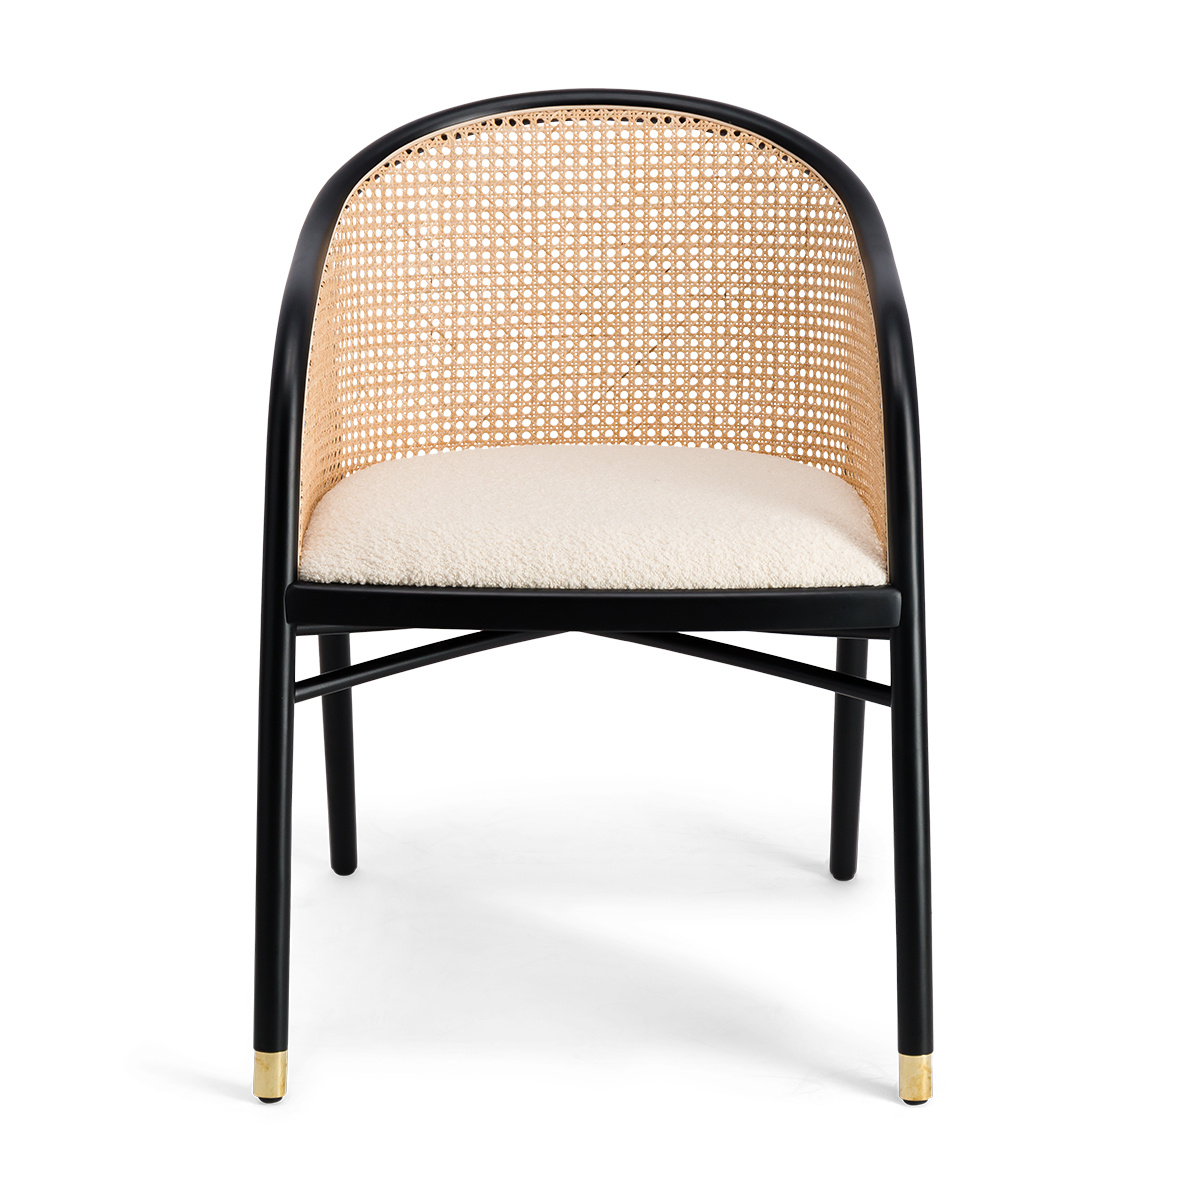 Cavallo Armchair, Cream White Curly Wool with Black Lacquered Frame